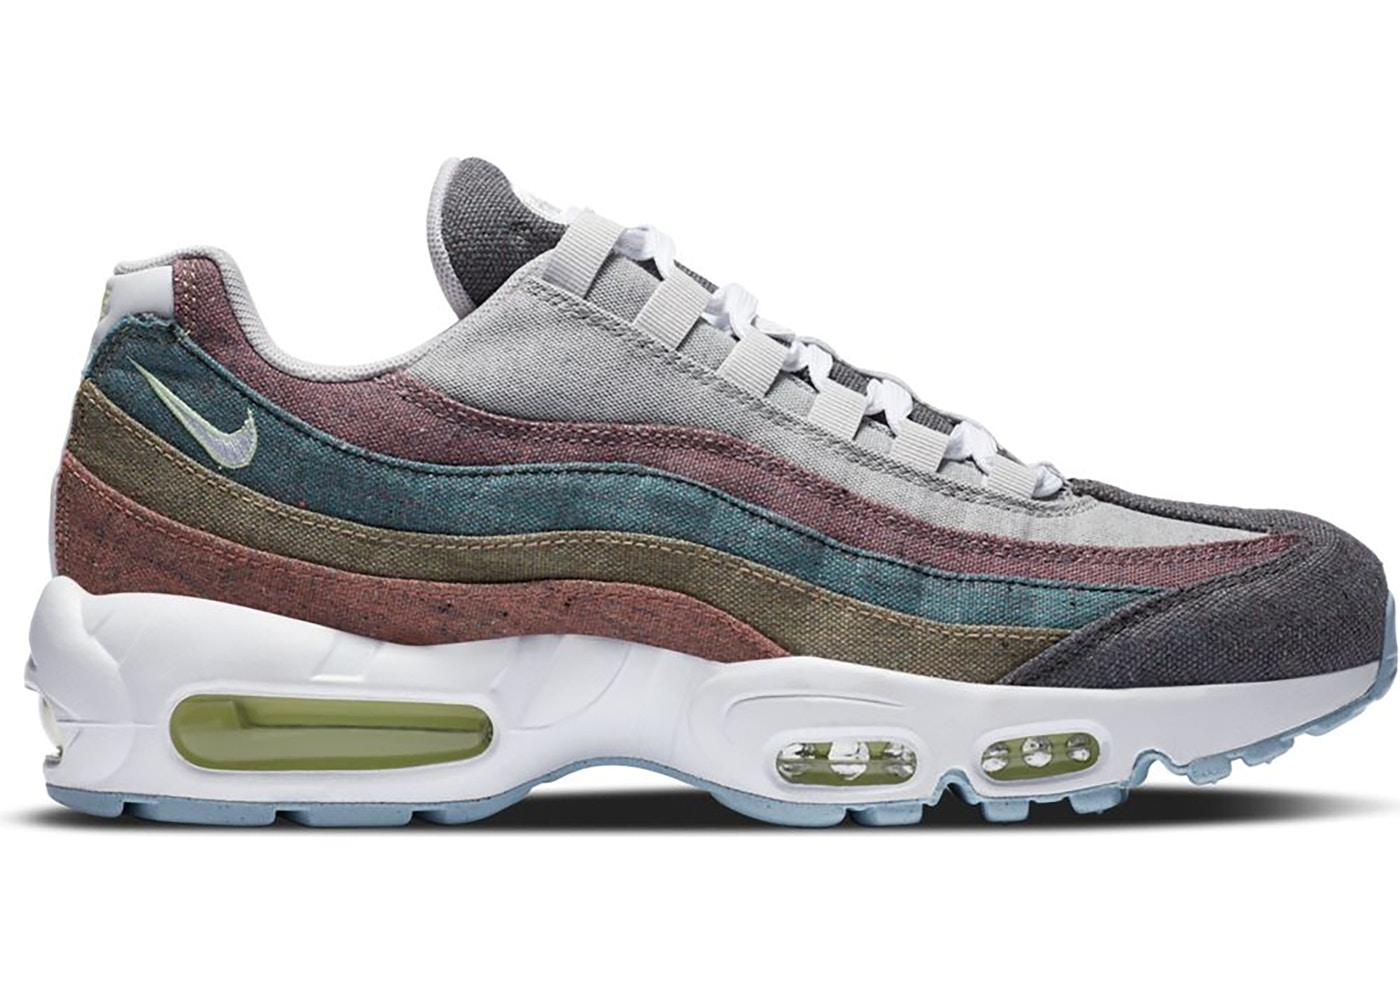 tono Soledad entrevista  Nike Air Max 95 Recycled Canvas - CK6478-001